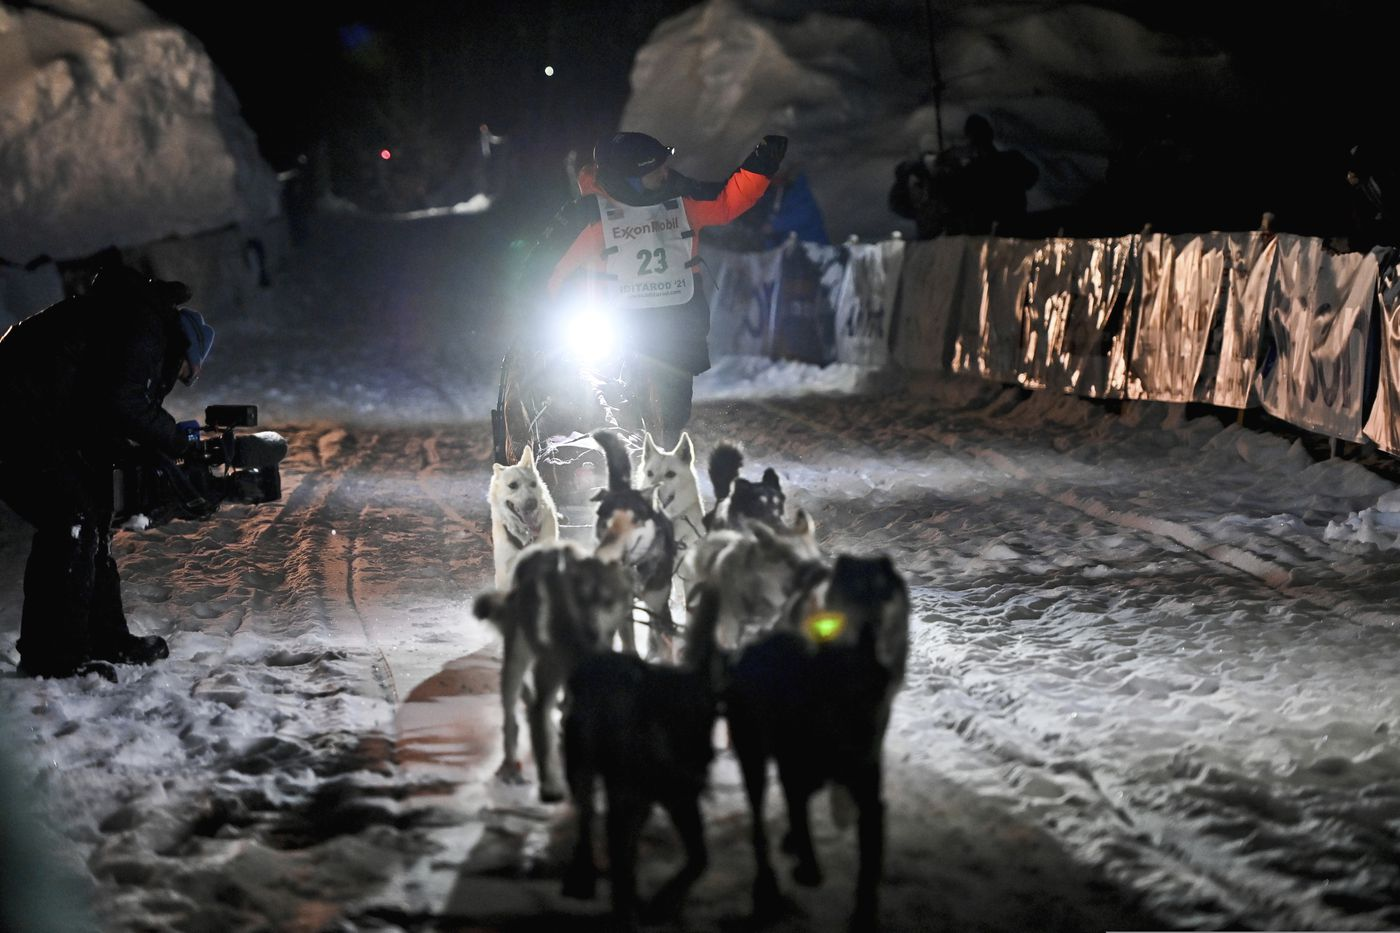 Dallas Seavey's team runs into the chute near the finish line of the Iditarod Trail Sled Dog Race race near Willow early Monday morning. Seavey has won the Iditarod and matched a milestone in the world's most famous sled dog race. It's the fifth title for the 34-year-old Seavey, matching the record of most wins by any musher. (Marc Lester/ADN)